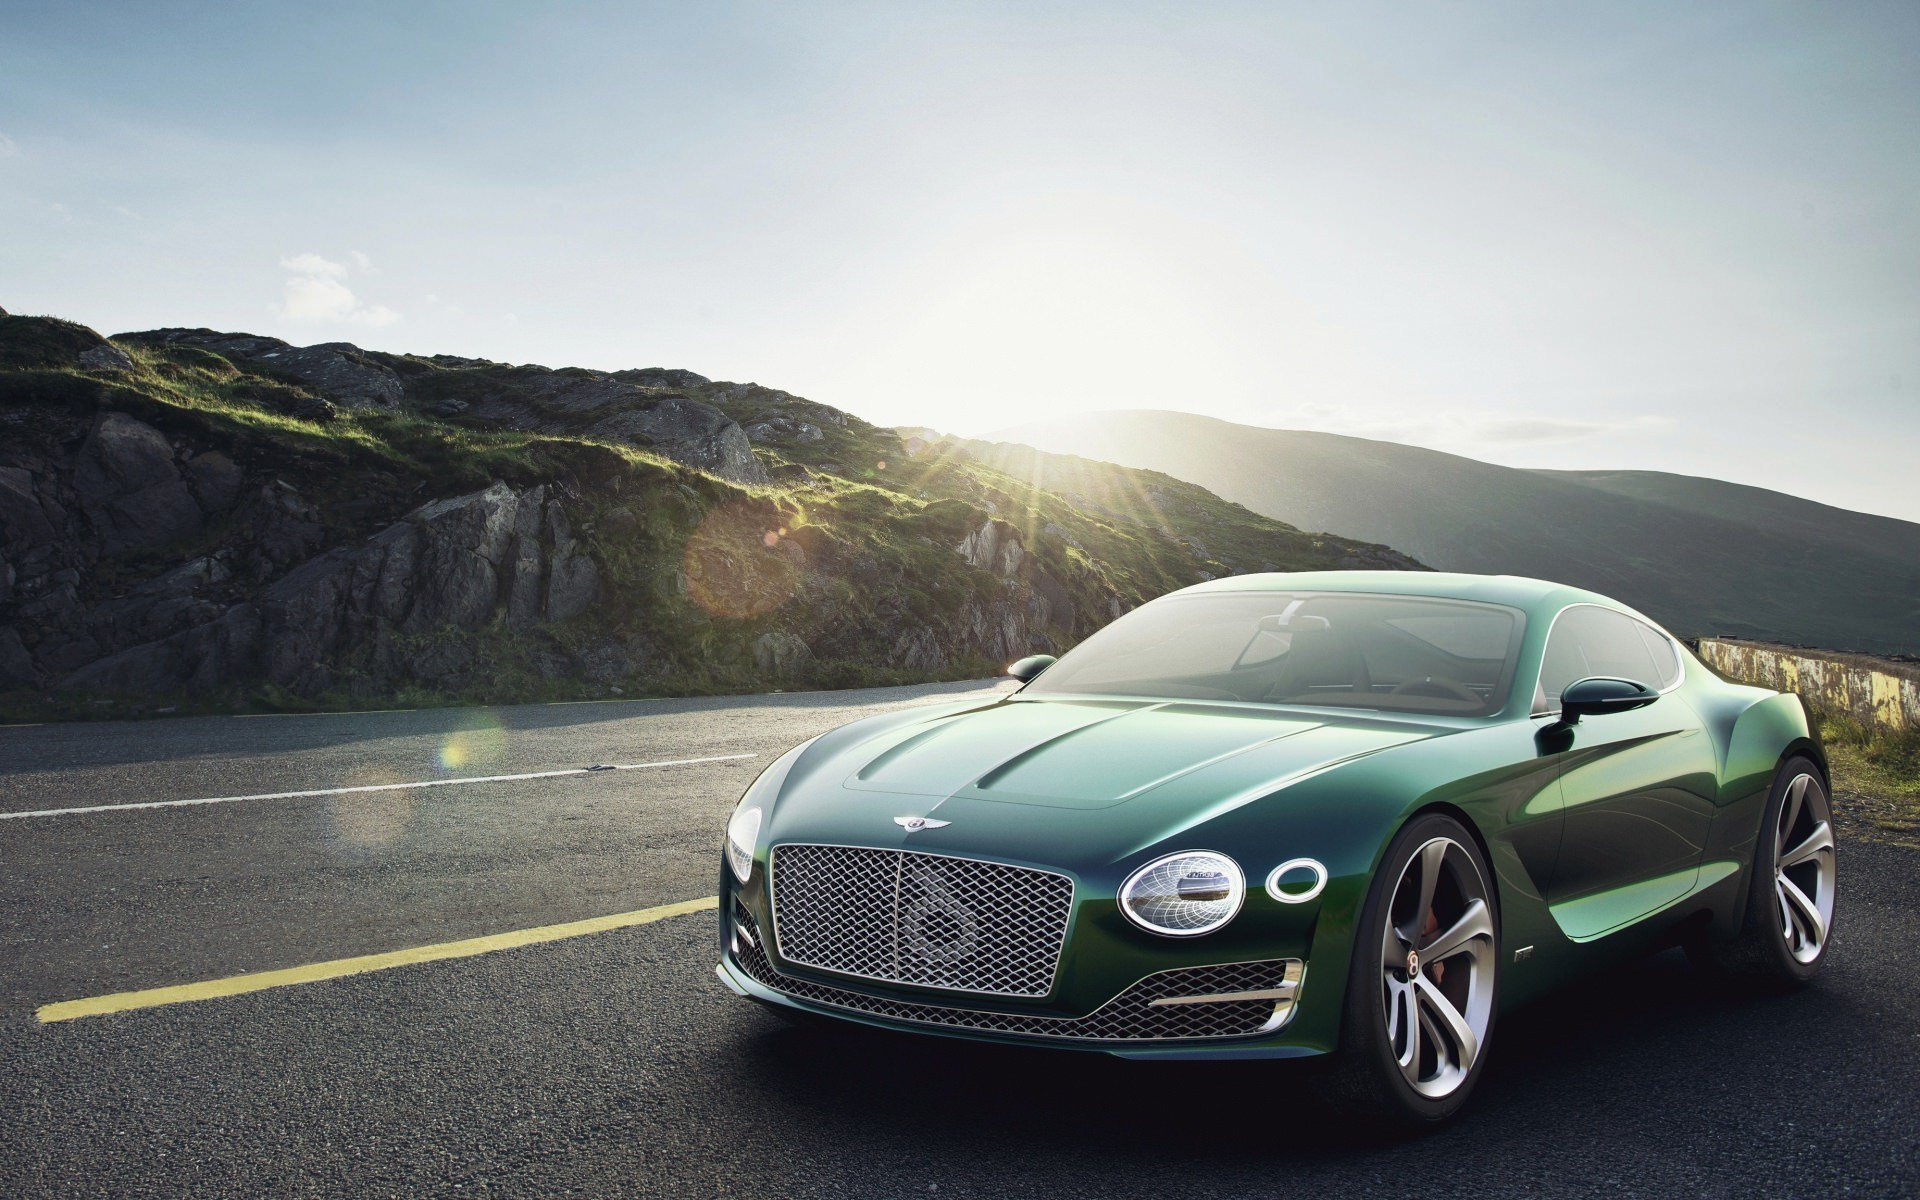 Latest 185 Hd Car Backgrounds Wallpapers Images Pictures Free Download